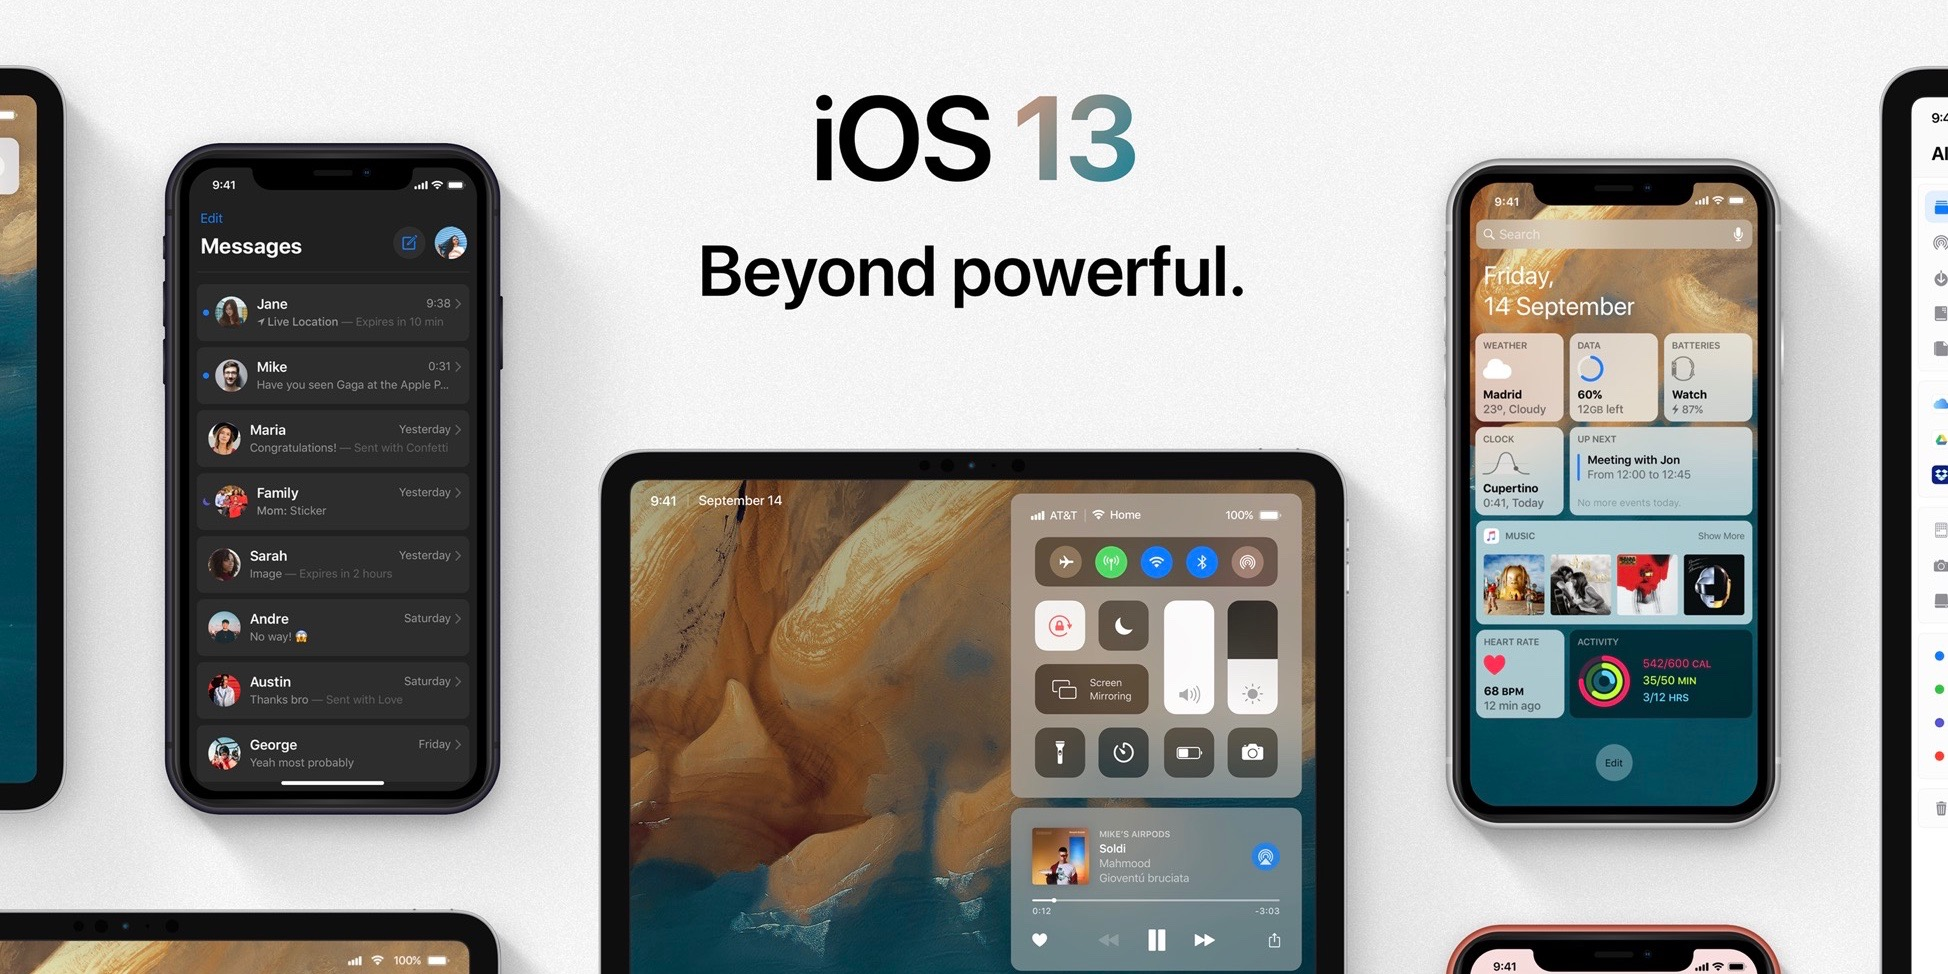 9to5mac.com - Michael Potuck - iOS 13 concept visualizes many of the features Apple expected to unveil at WWDC